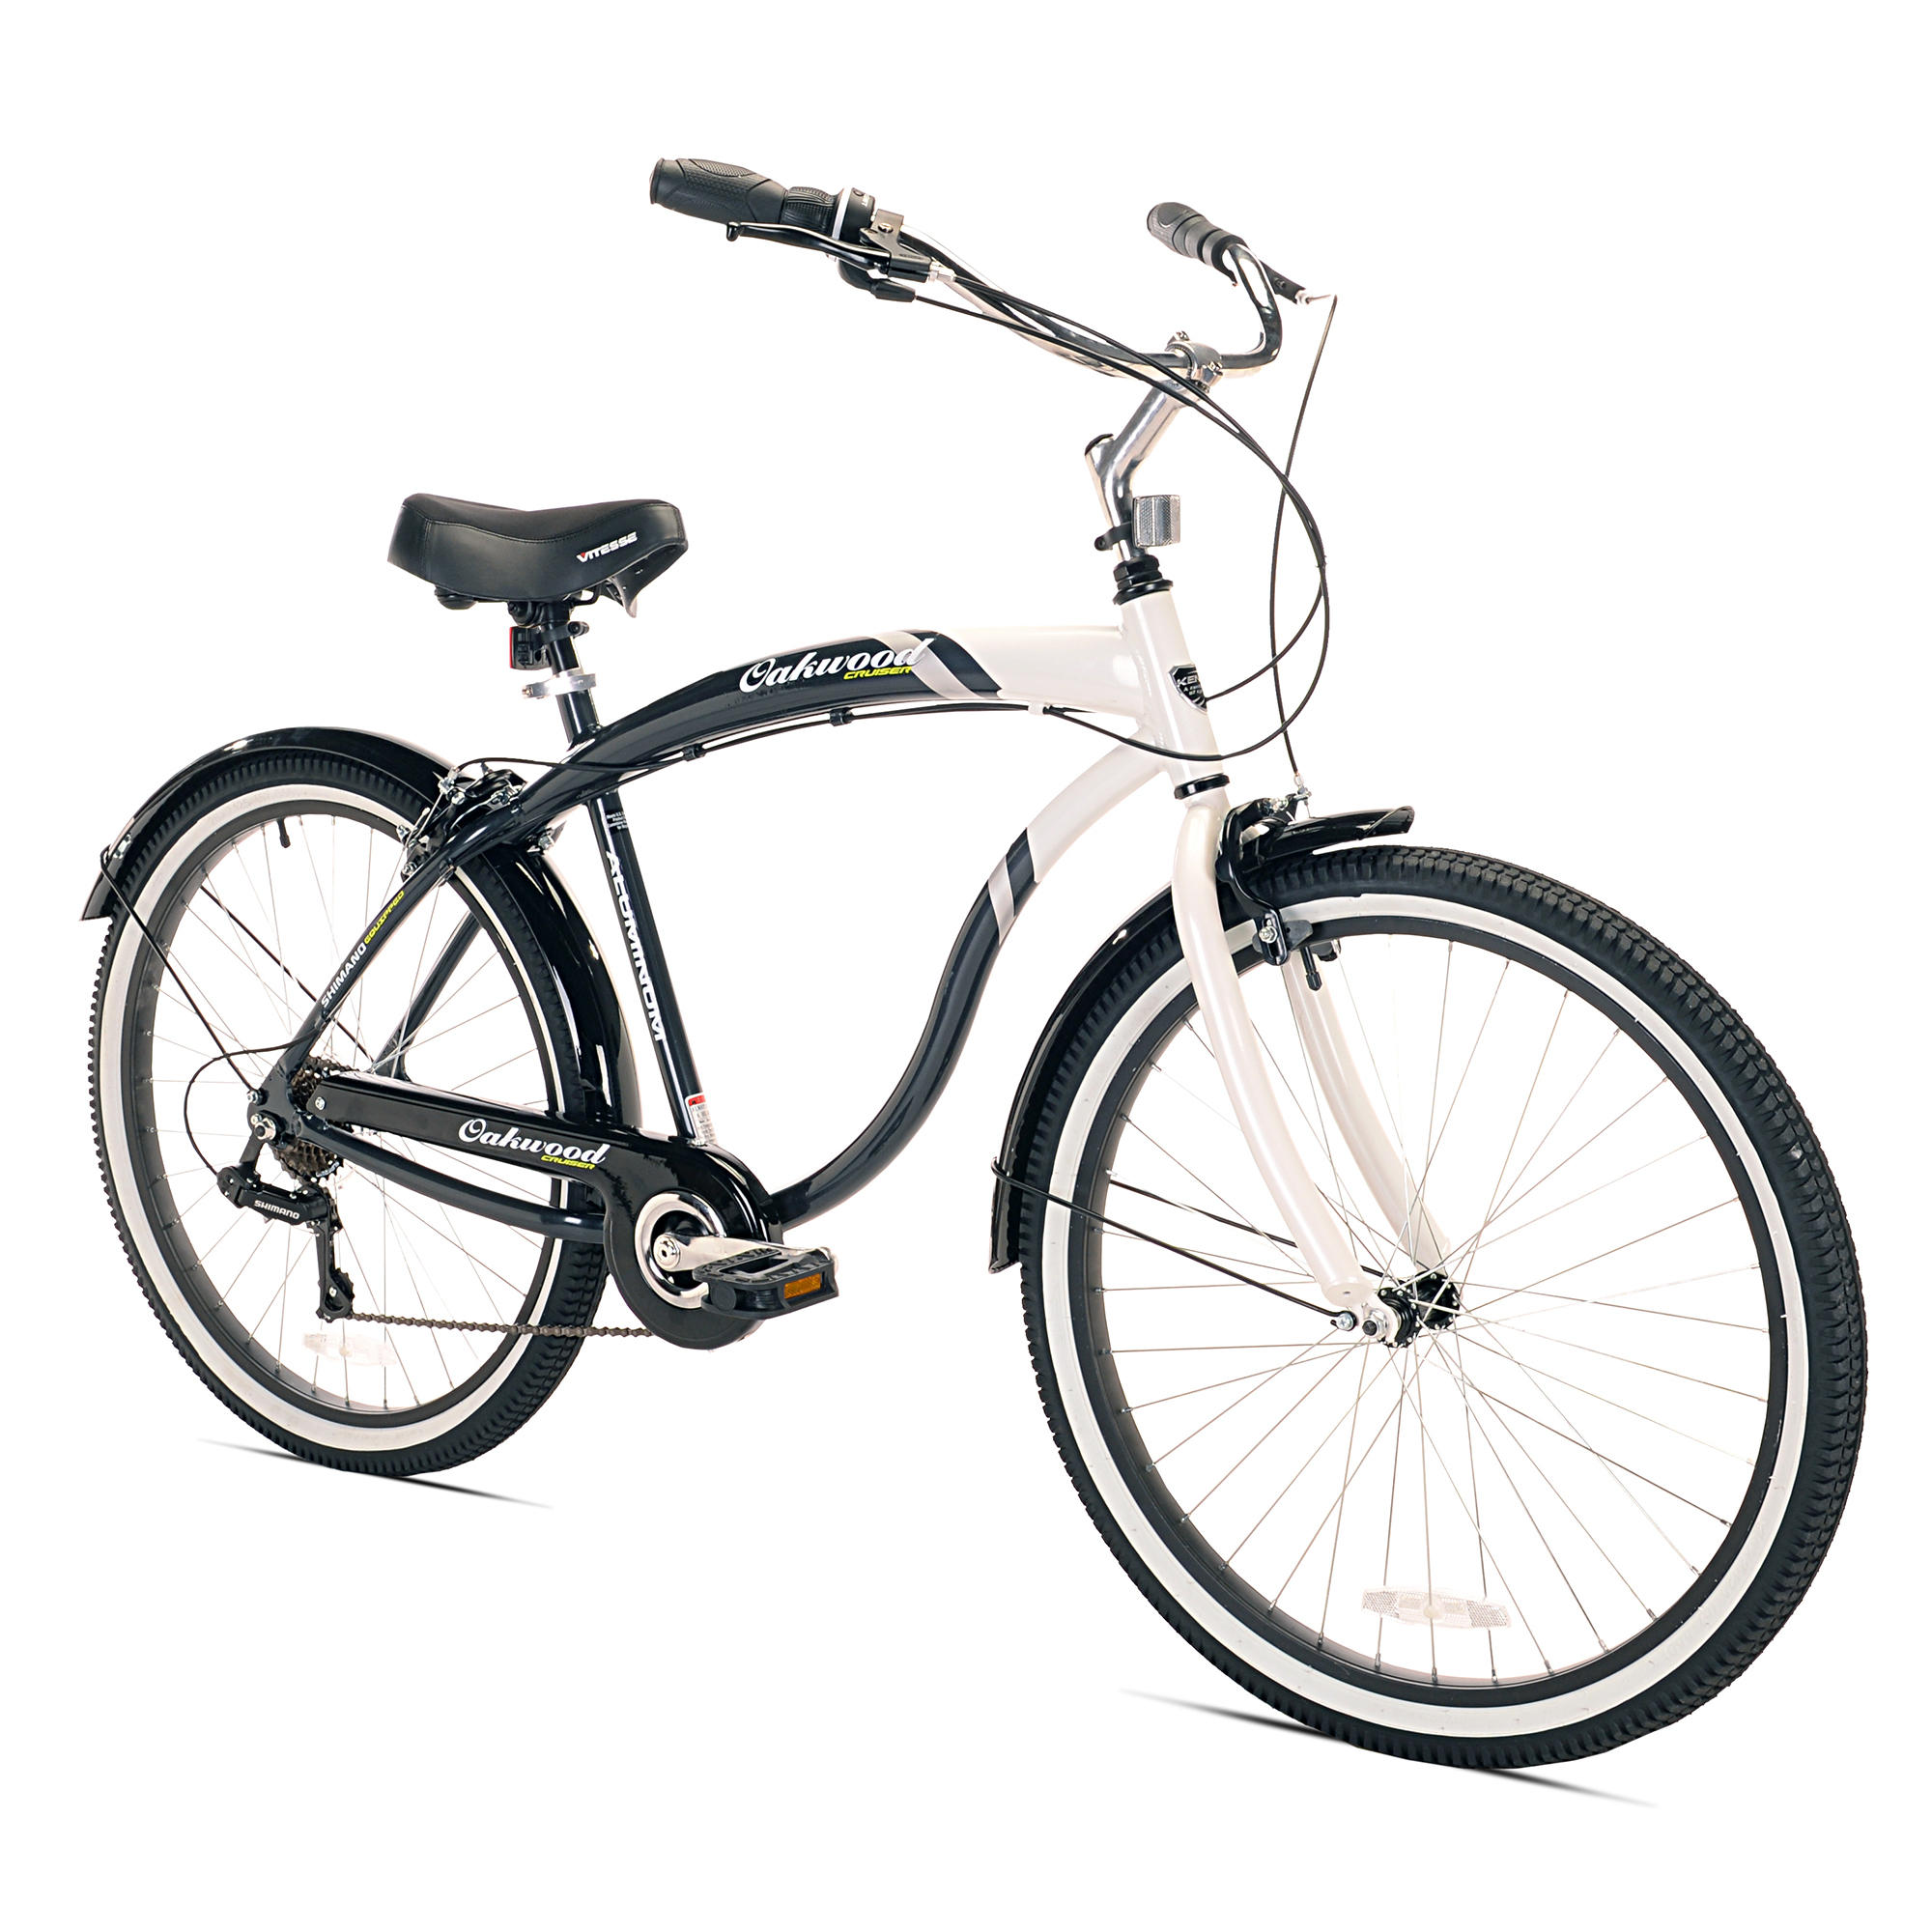 Oakwood Men's 26 Inch White Wall Tire Cruiser Bike with 7 Speed Gear Shift